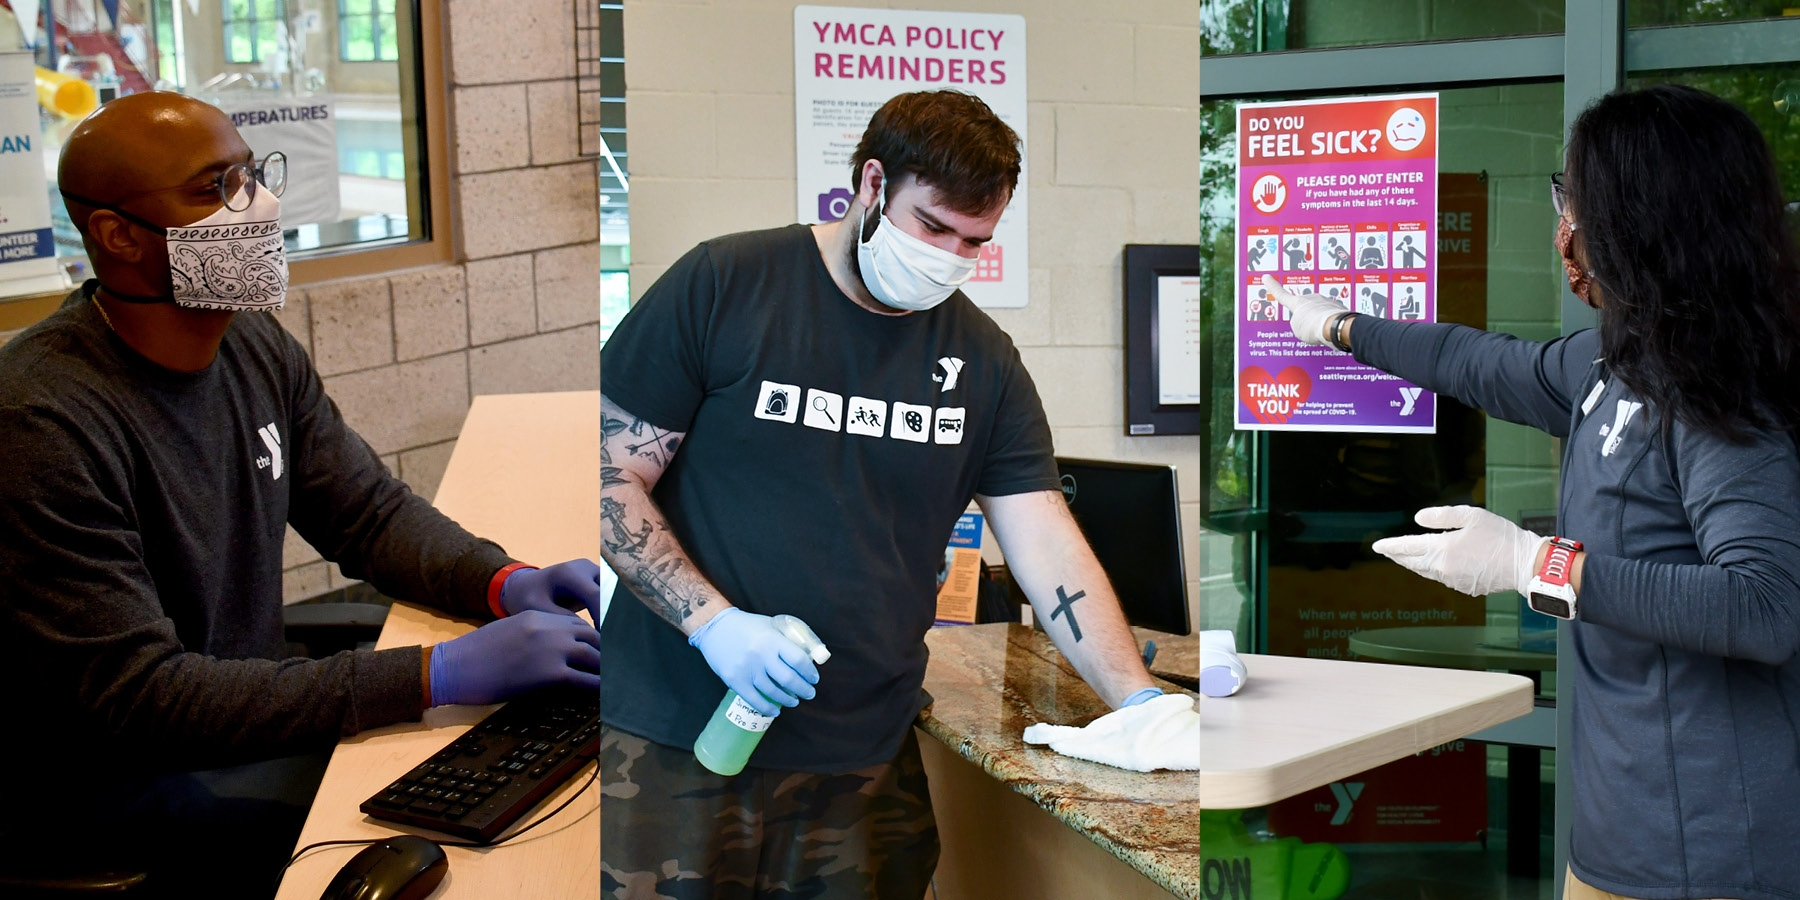 Staff wearing mask and gloves while helping members and cleaning surfaces.